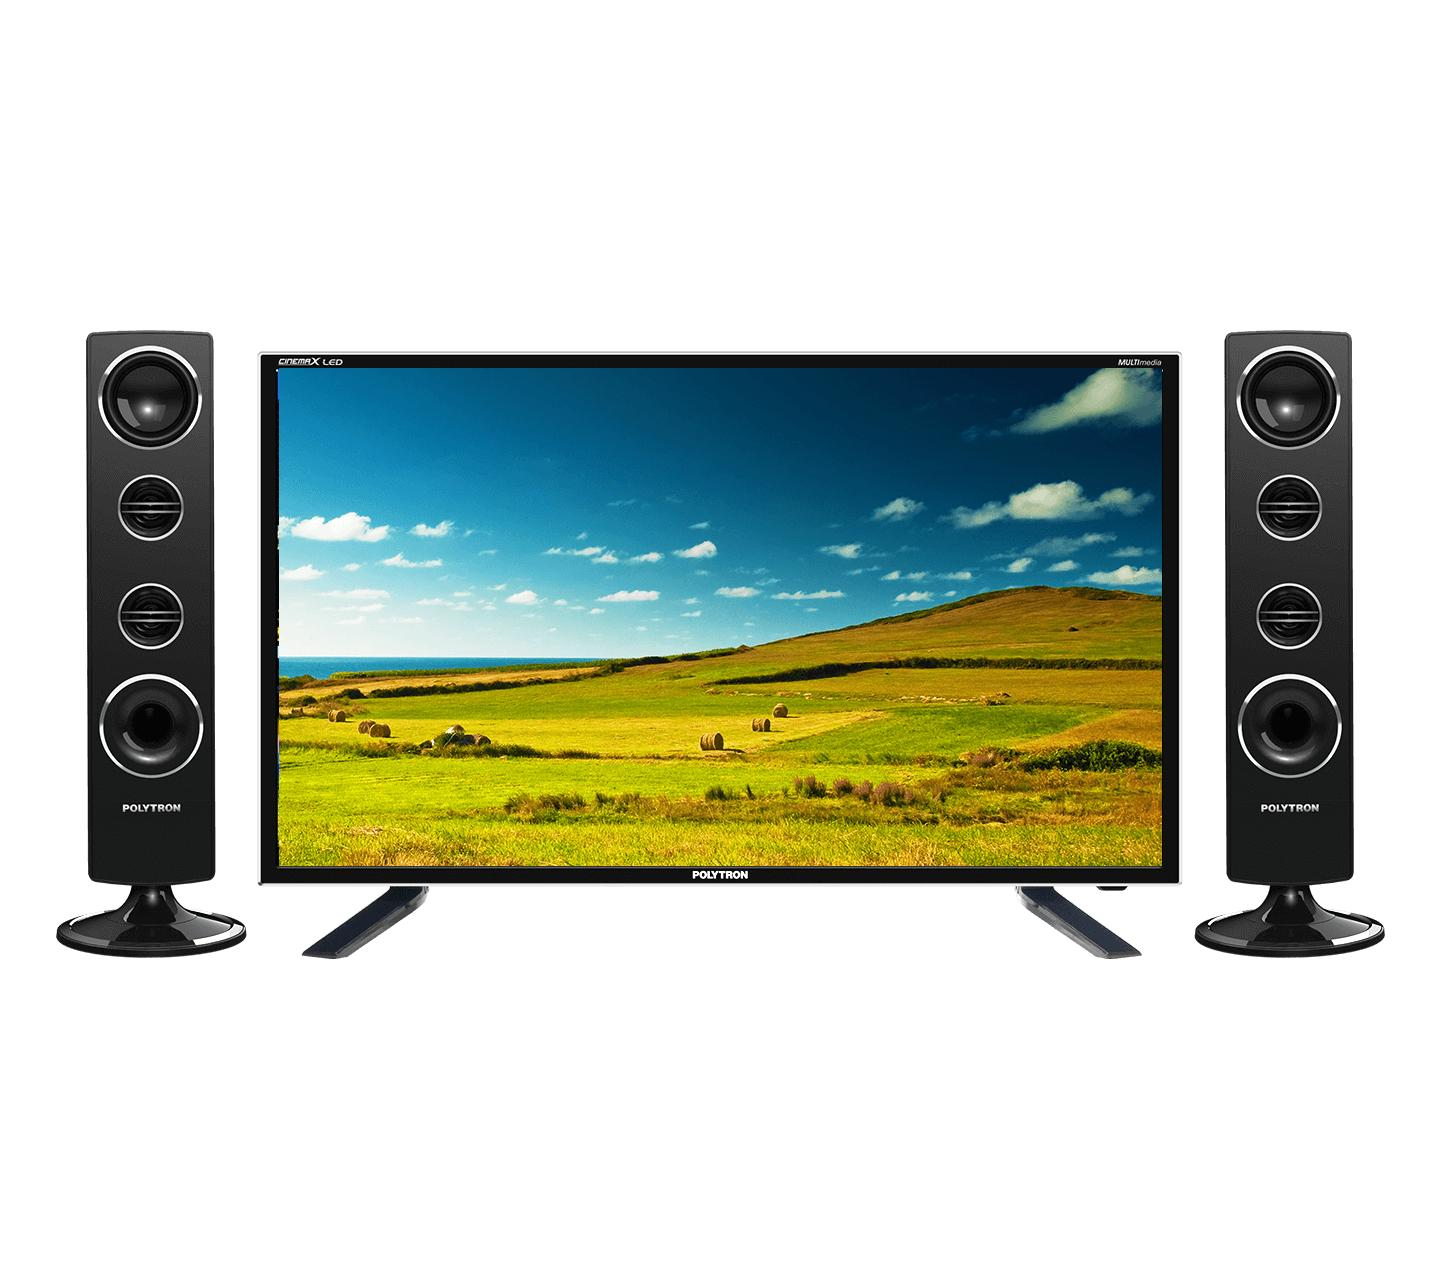 Polytron PLD32T1500 Tower CinemaX TV LED - Hitam [32 Inch] FREE PACK KAYU